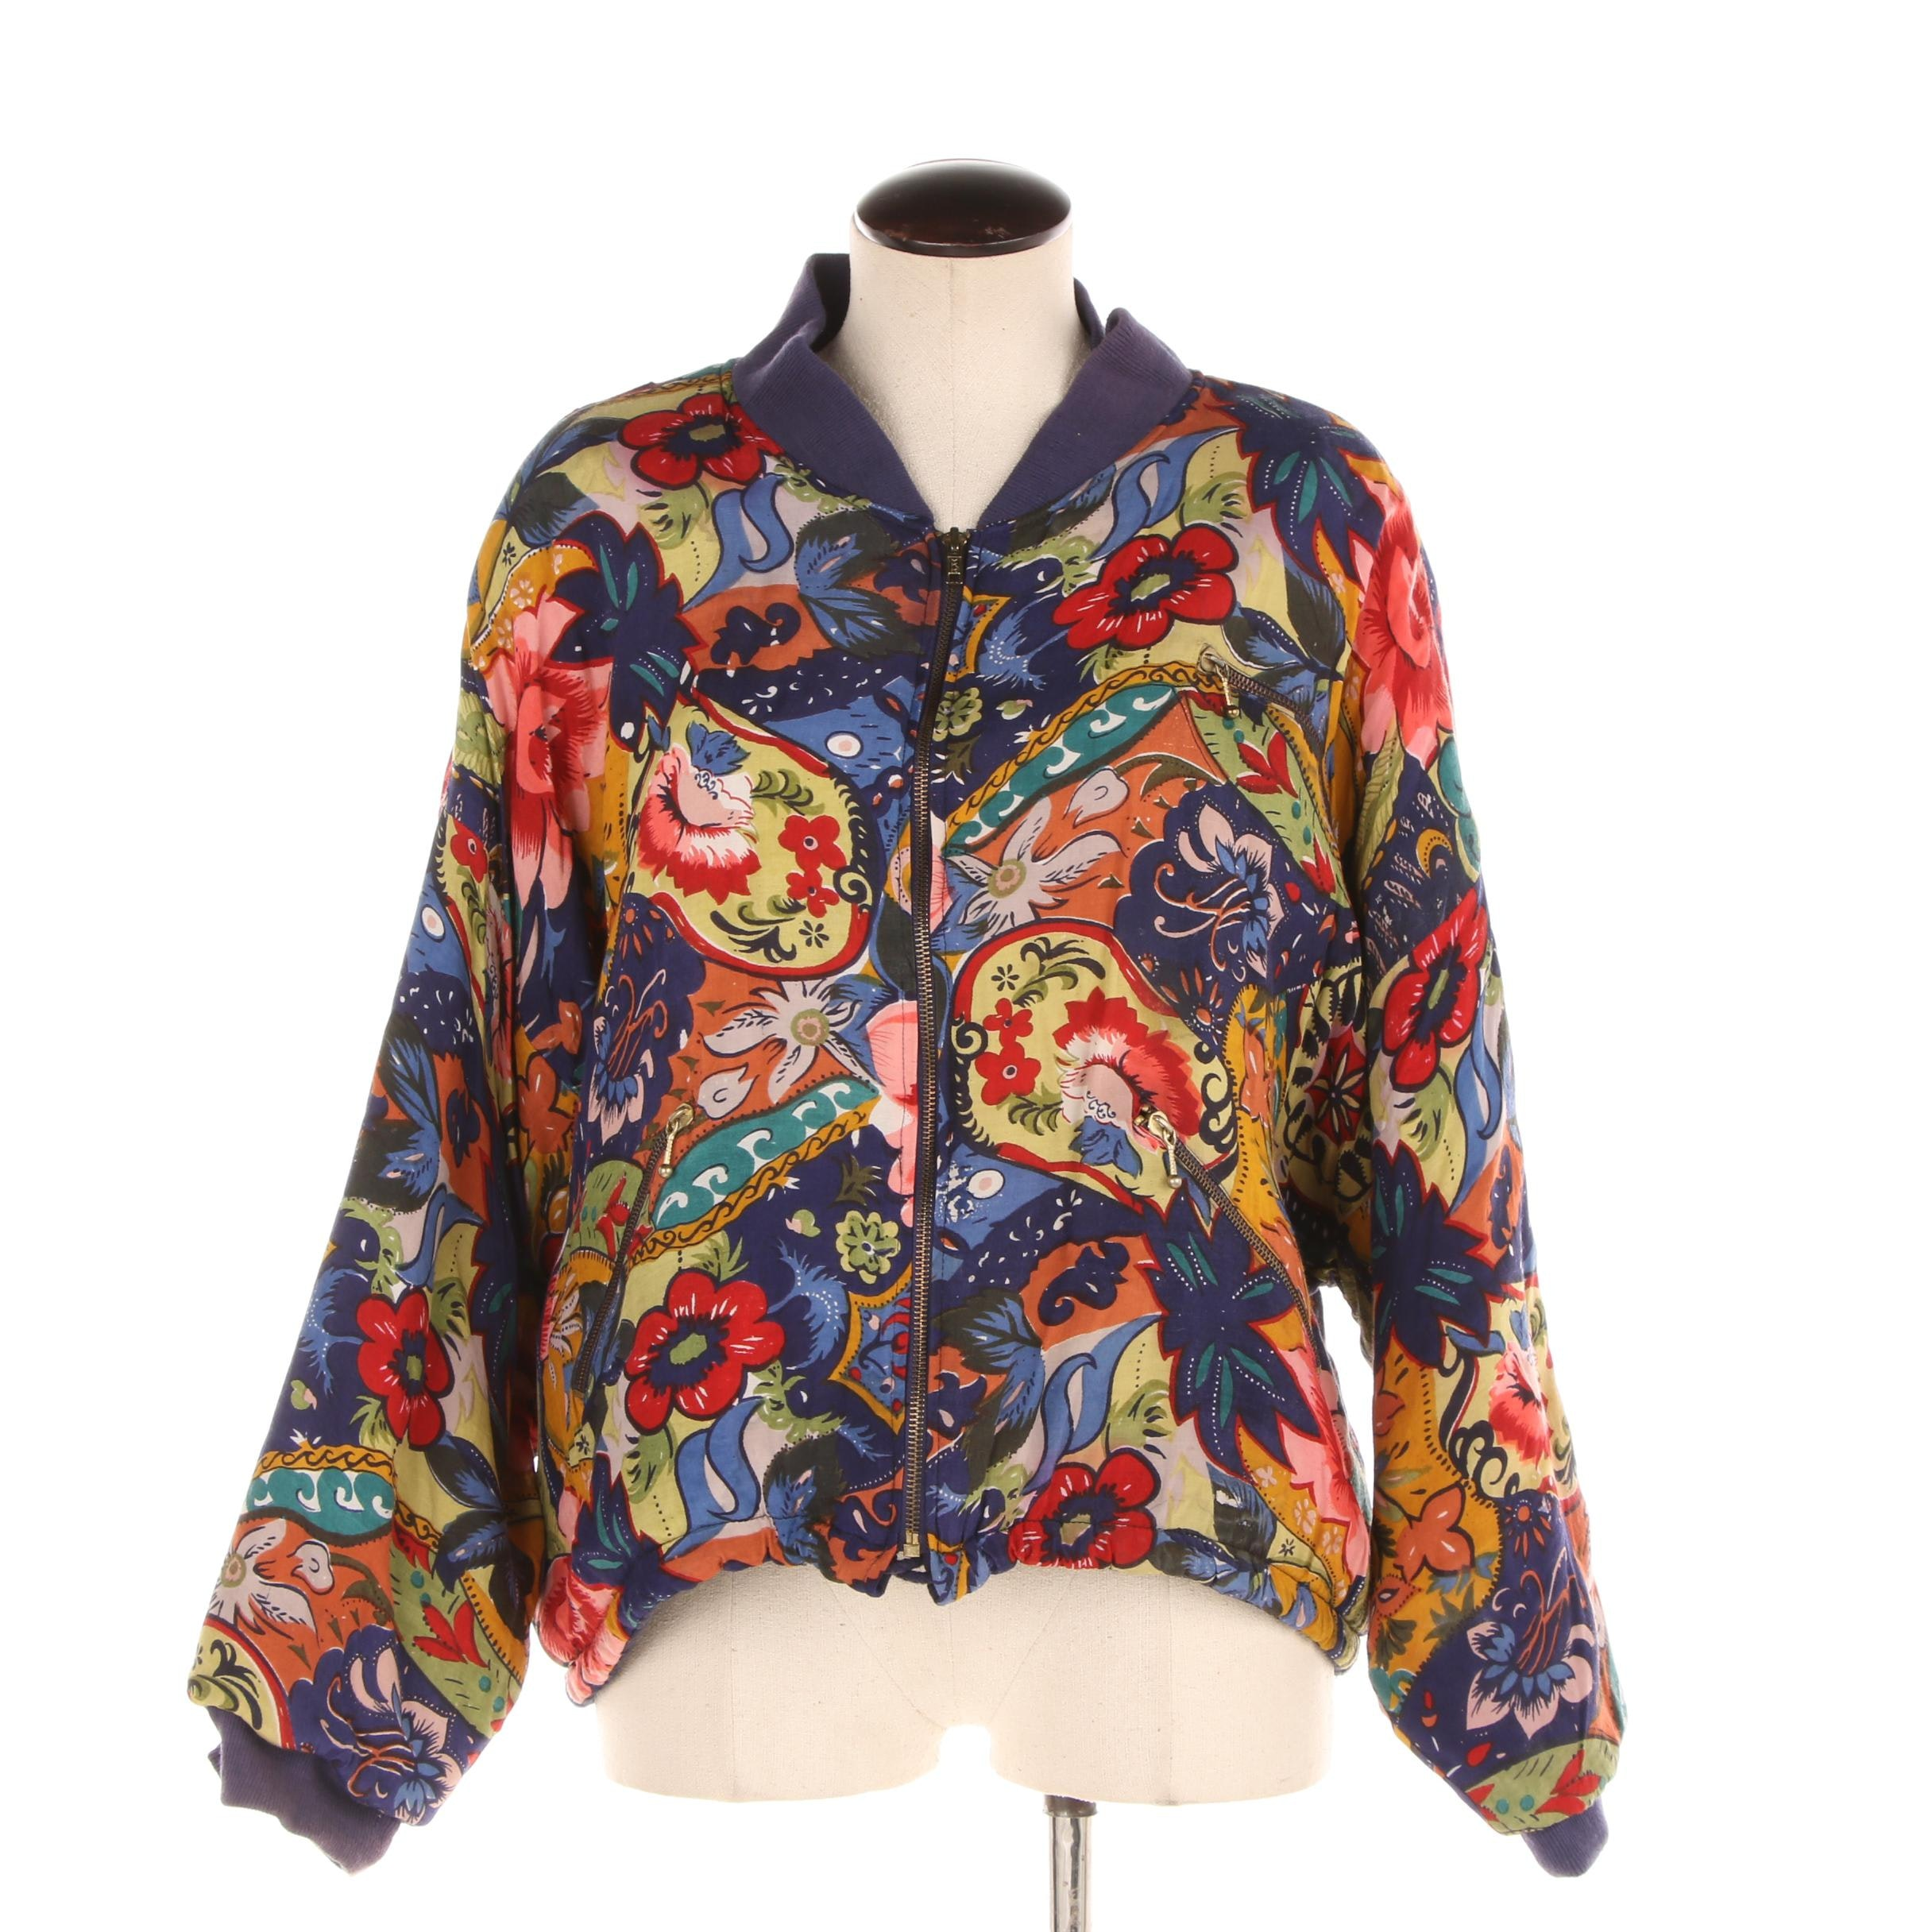 Women's Sugar Co. Ltd. Multicolored Floral Print Rayon Jacket